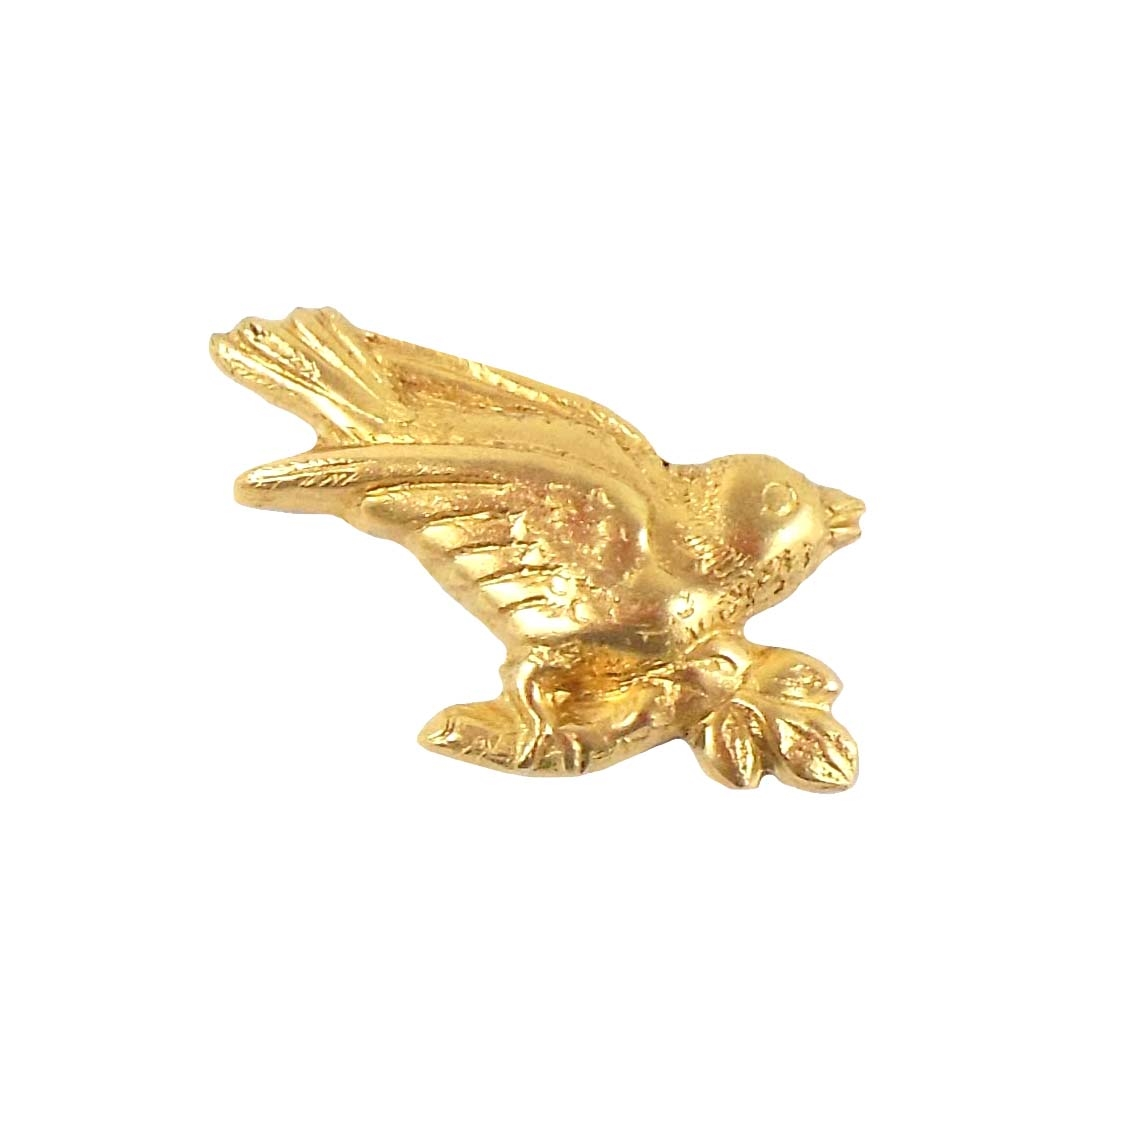 brass birds, bird stampings, jewelry making, raw, B'sue Boutiques, 06503, antique brass, vintage jewelry supplies, brass jewelry parts,bird jewelry